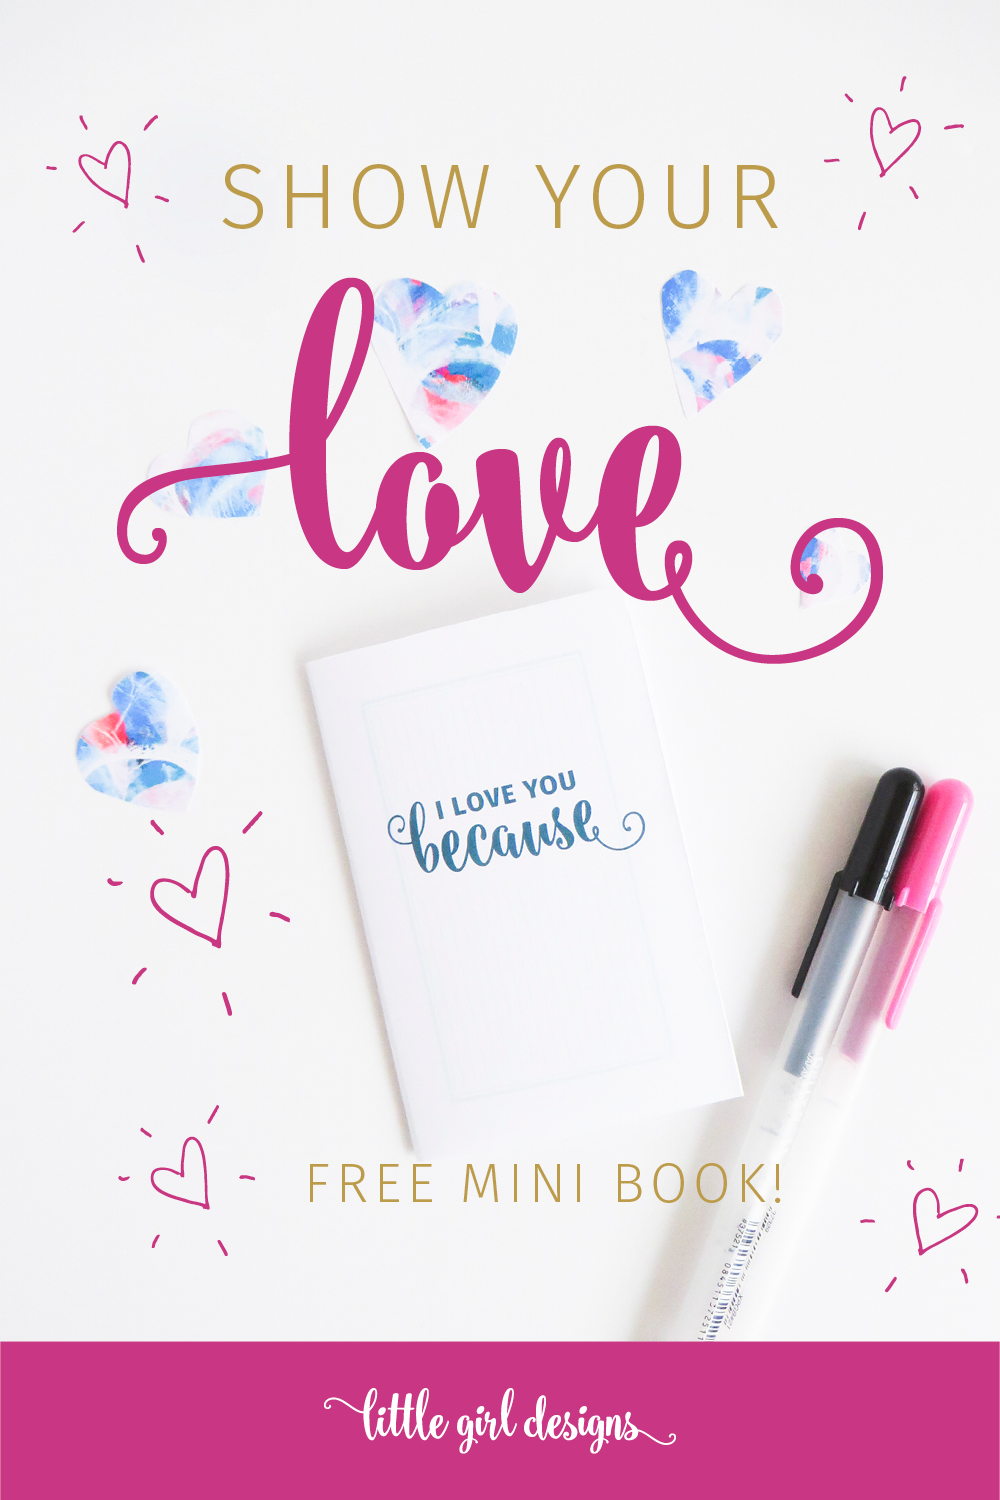 Download this free Valentine's Day mini book and give it to someone you LOVE! :) Perfect for Valentine's Day, birthdays, anniversaries, or any time you want to share your love.